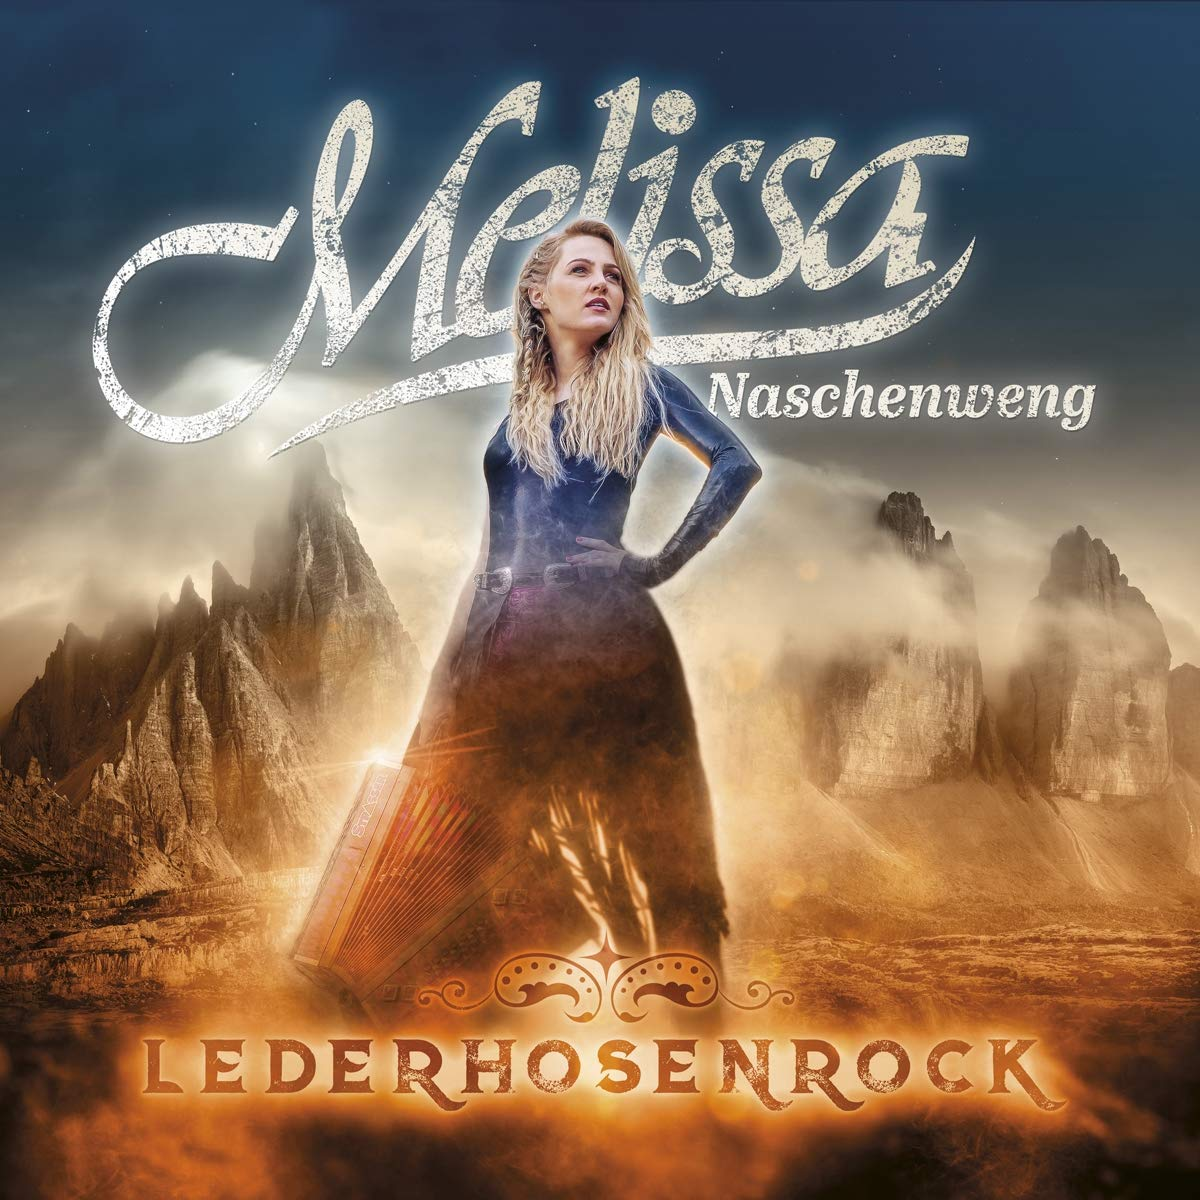 SCHLAGER ALBUM CHARTS TOP 20 - Schlager Hits 2021